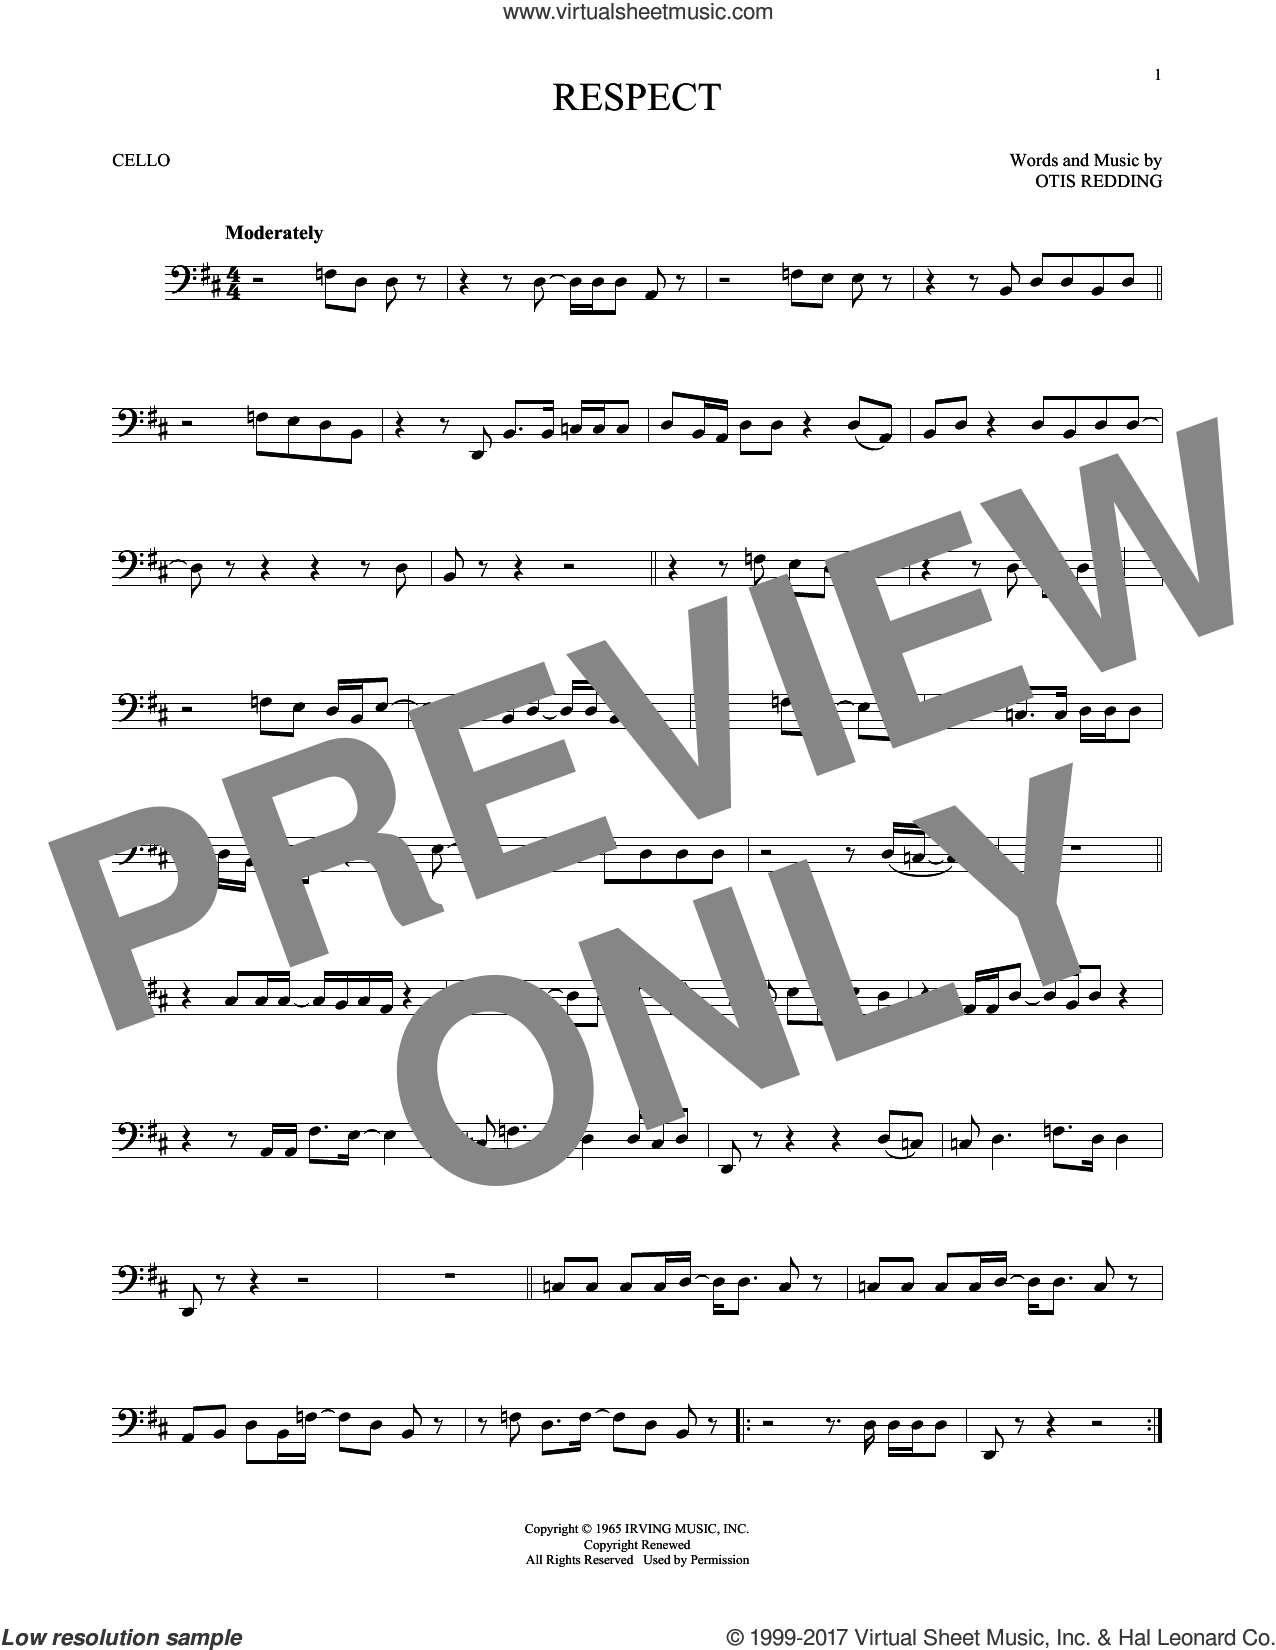 Respect sheet music for cello solo by Aretha Franklin and Otis Redding, intermediate